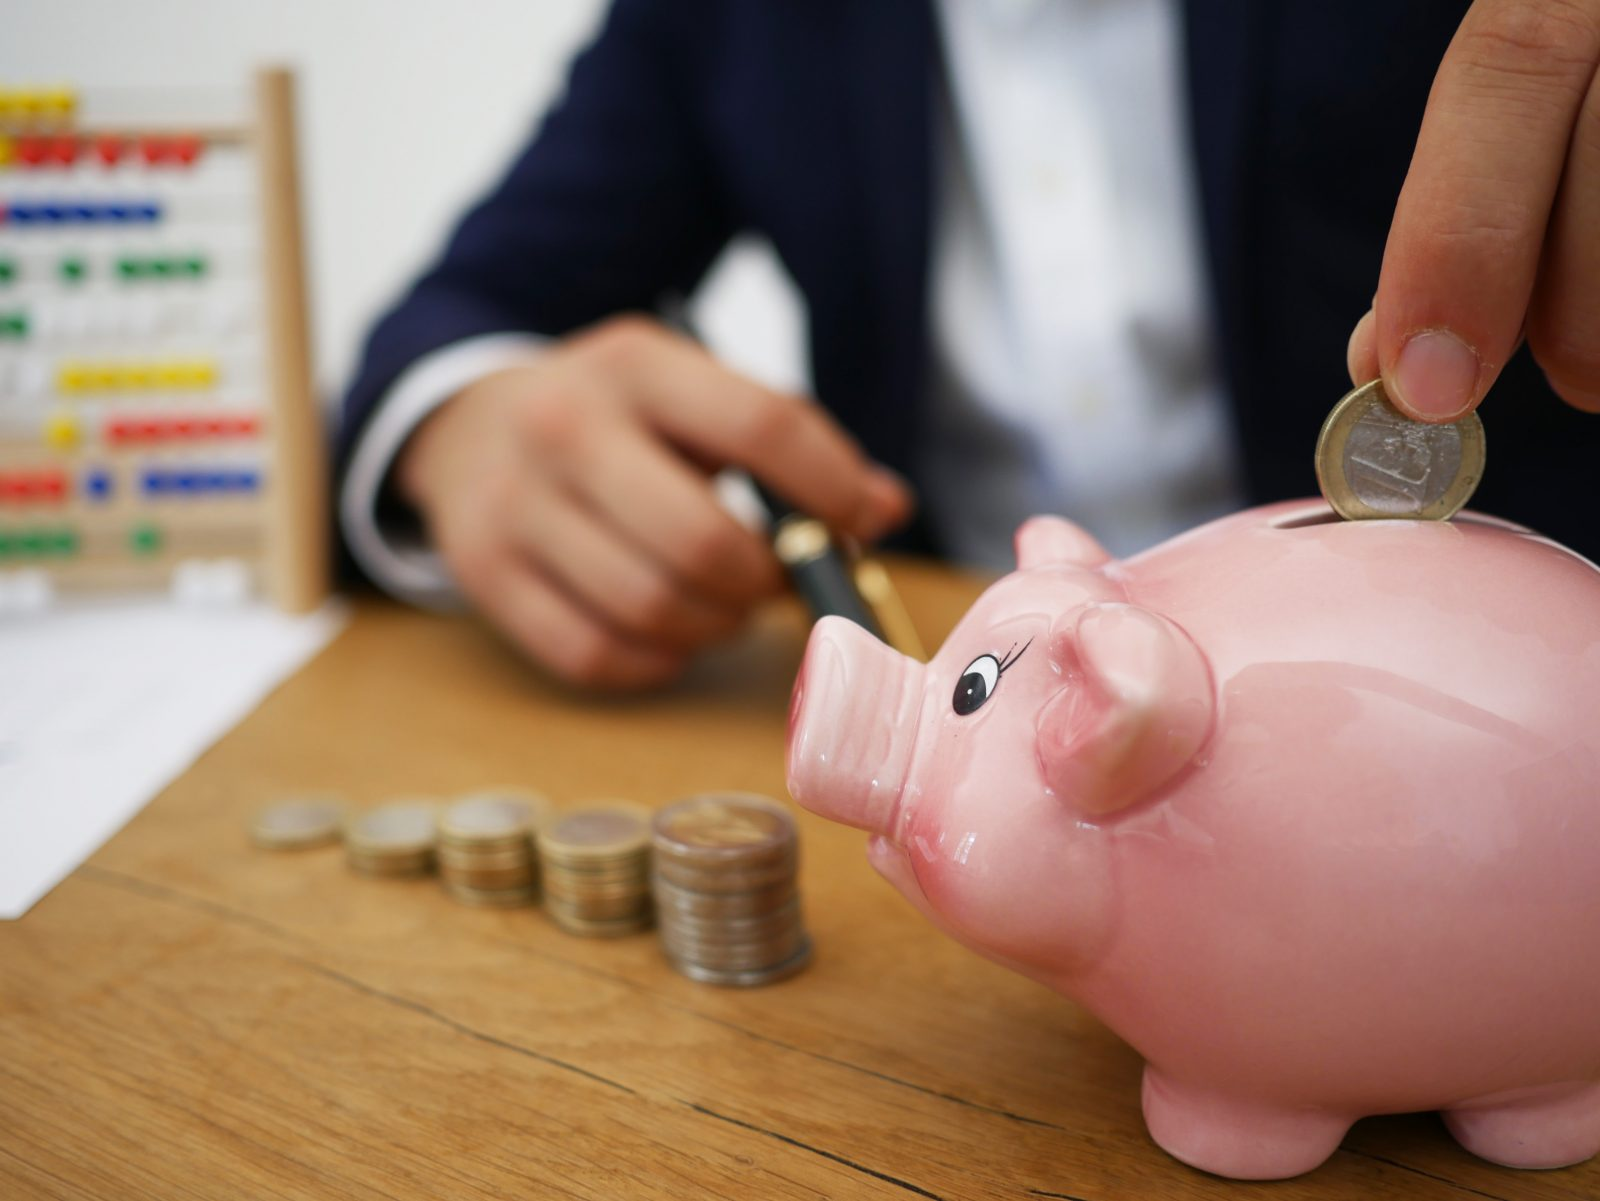 Struggling Financially?  Ways to Help You Get Back on Your Feet